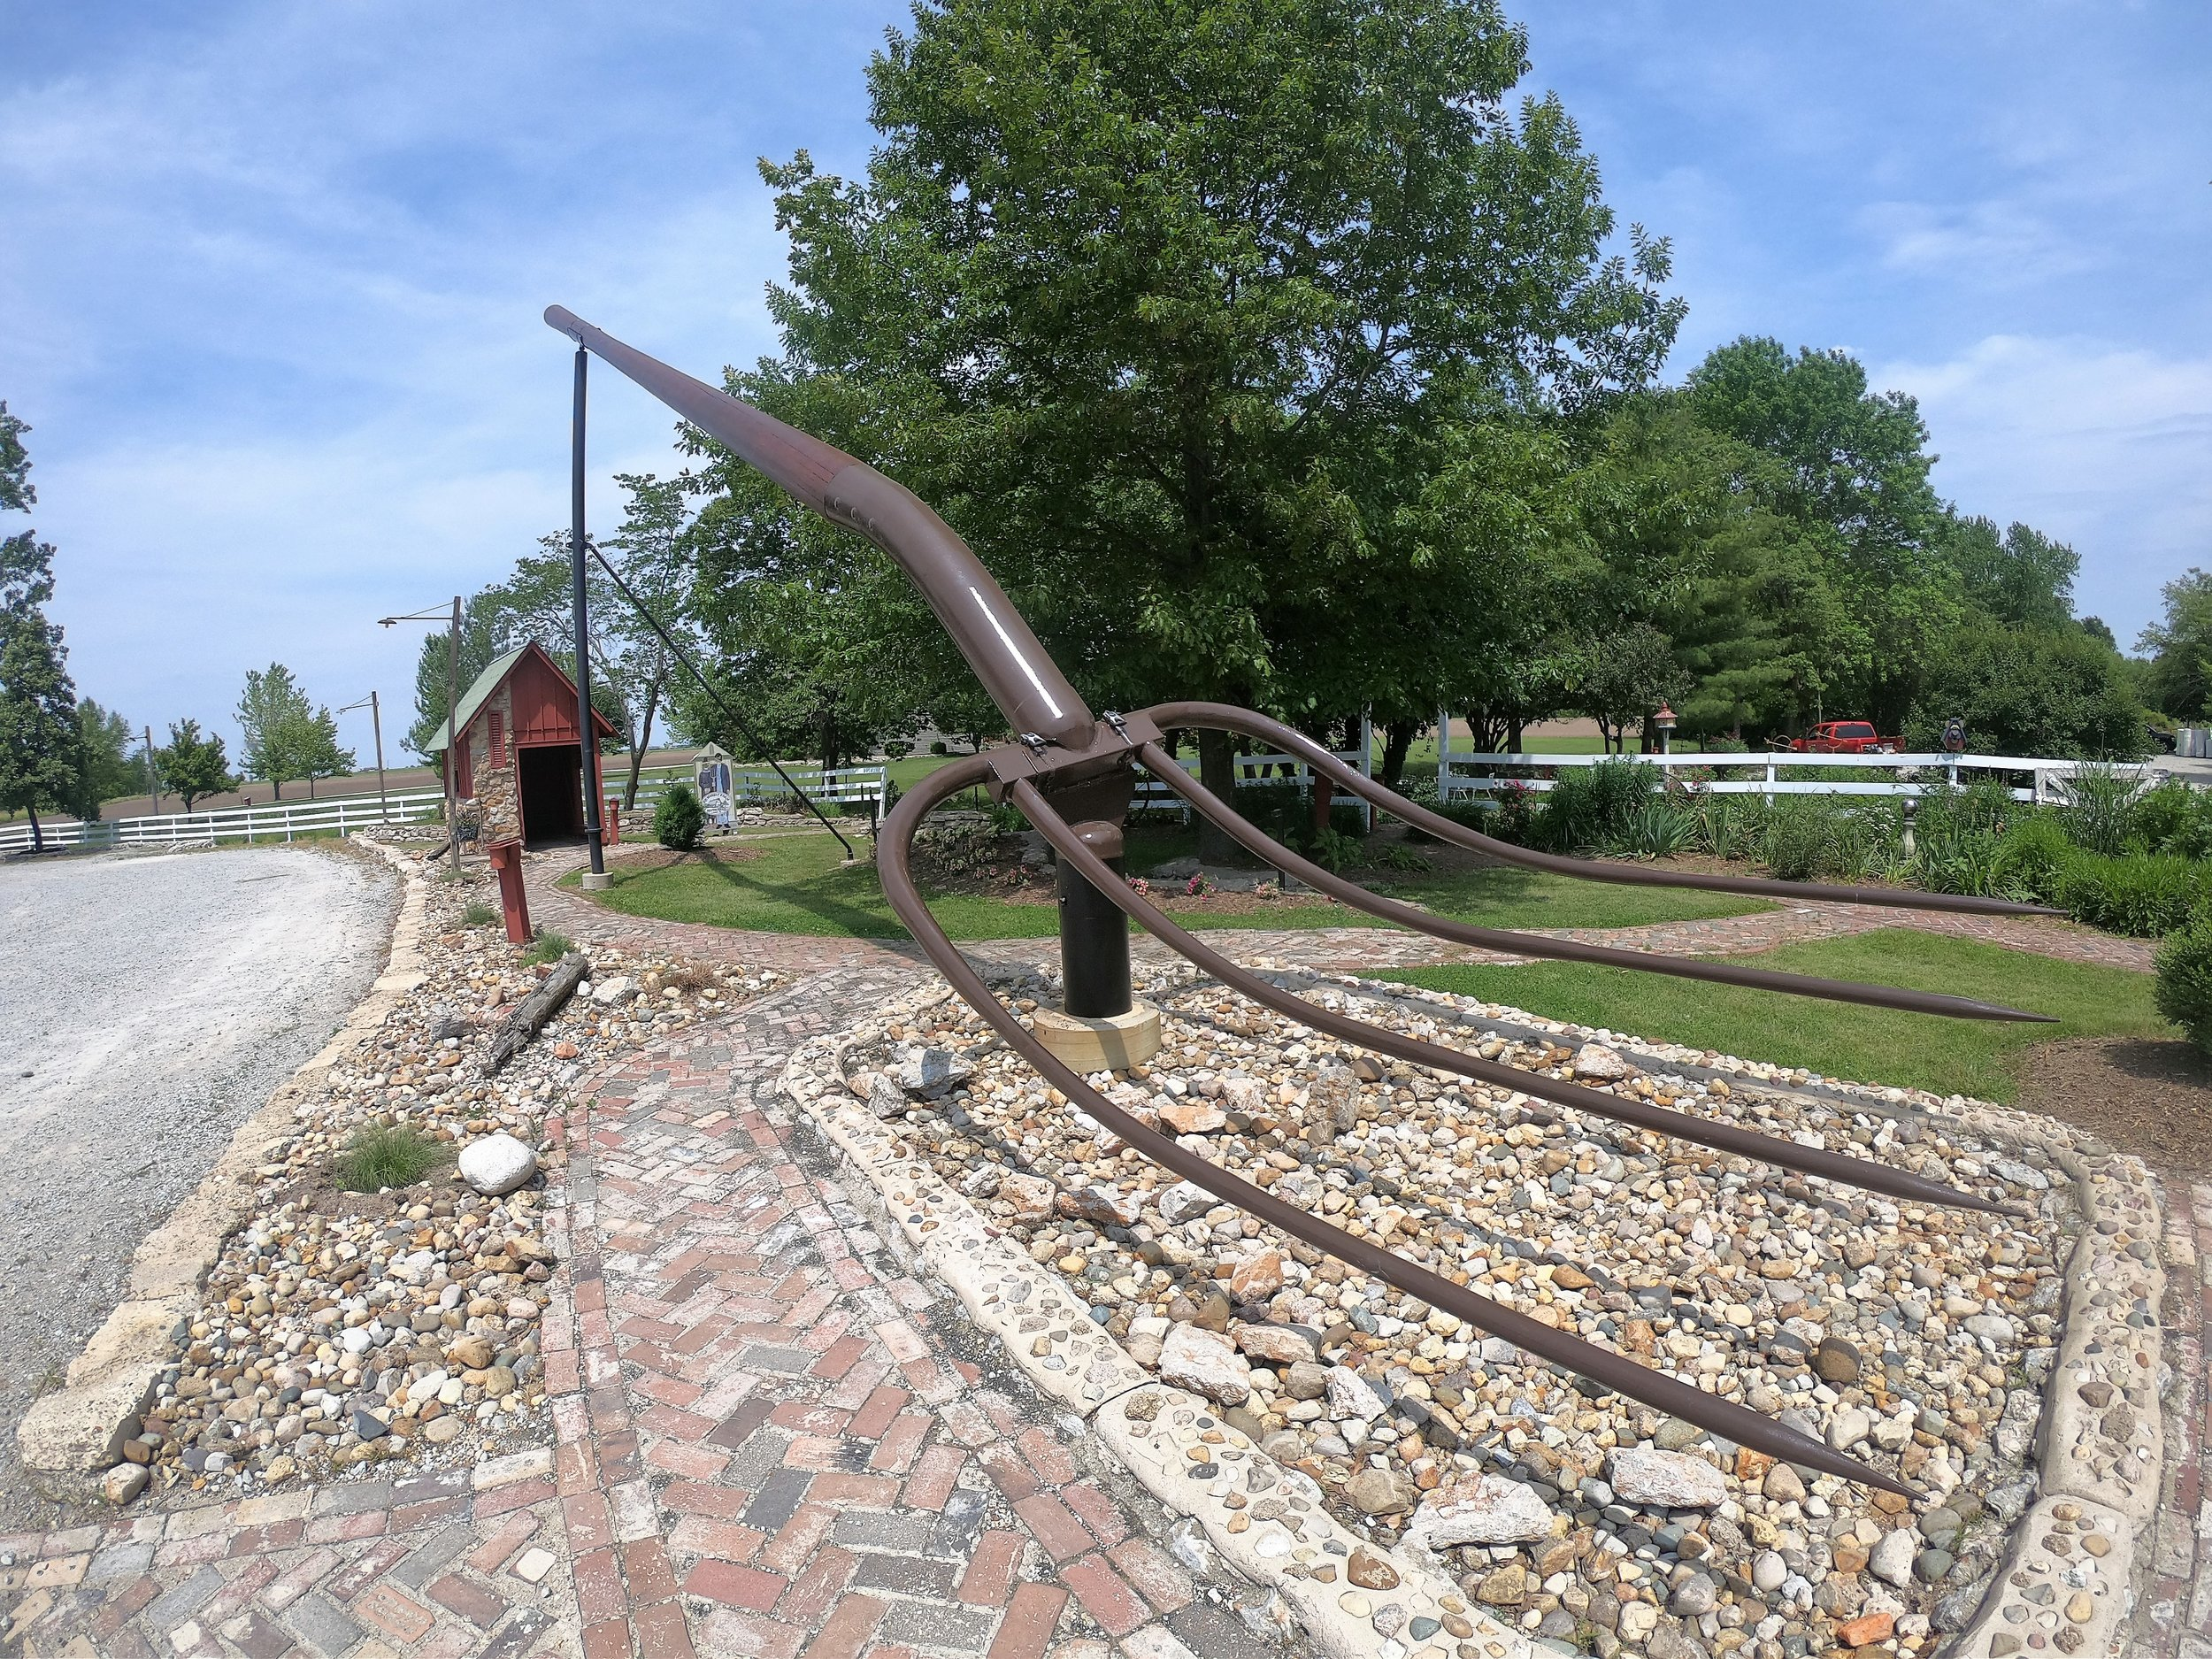 World's Largest Pitchfork in Casey, Illinois